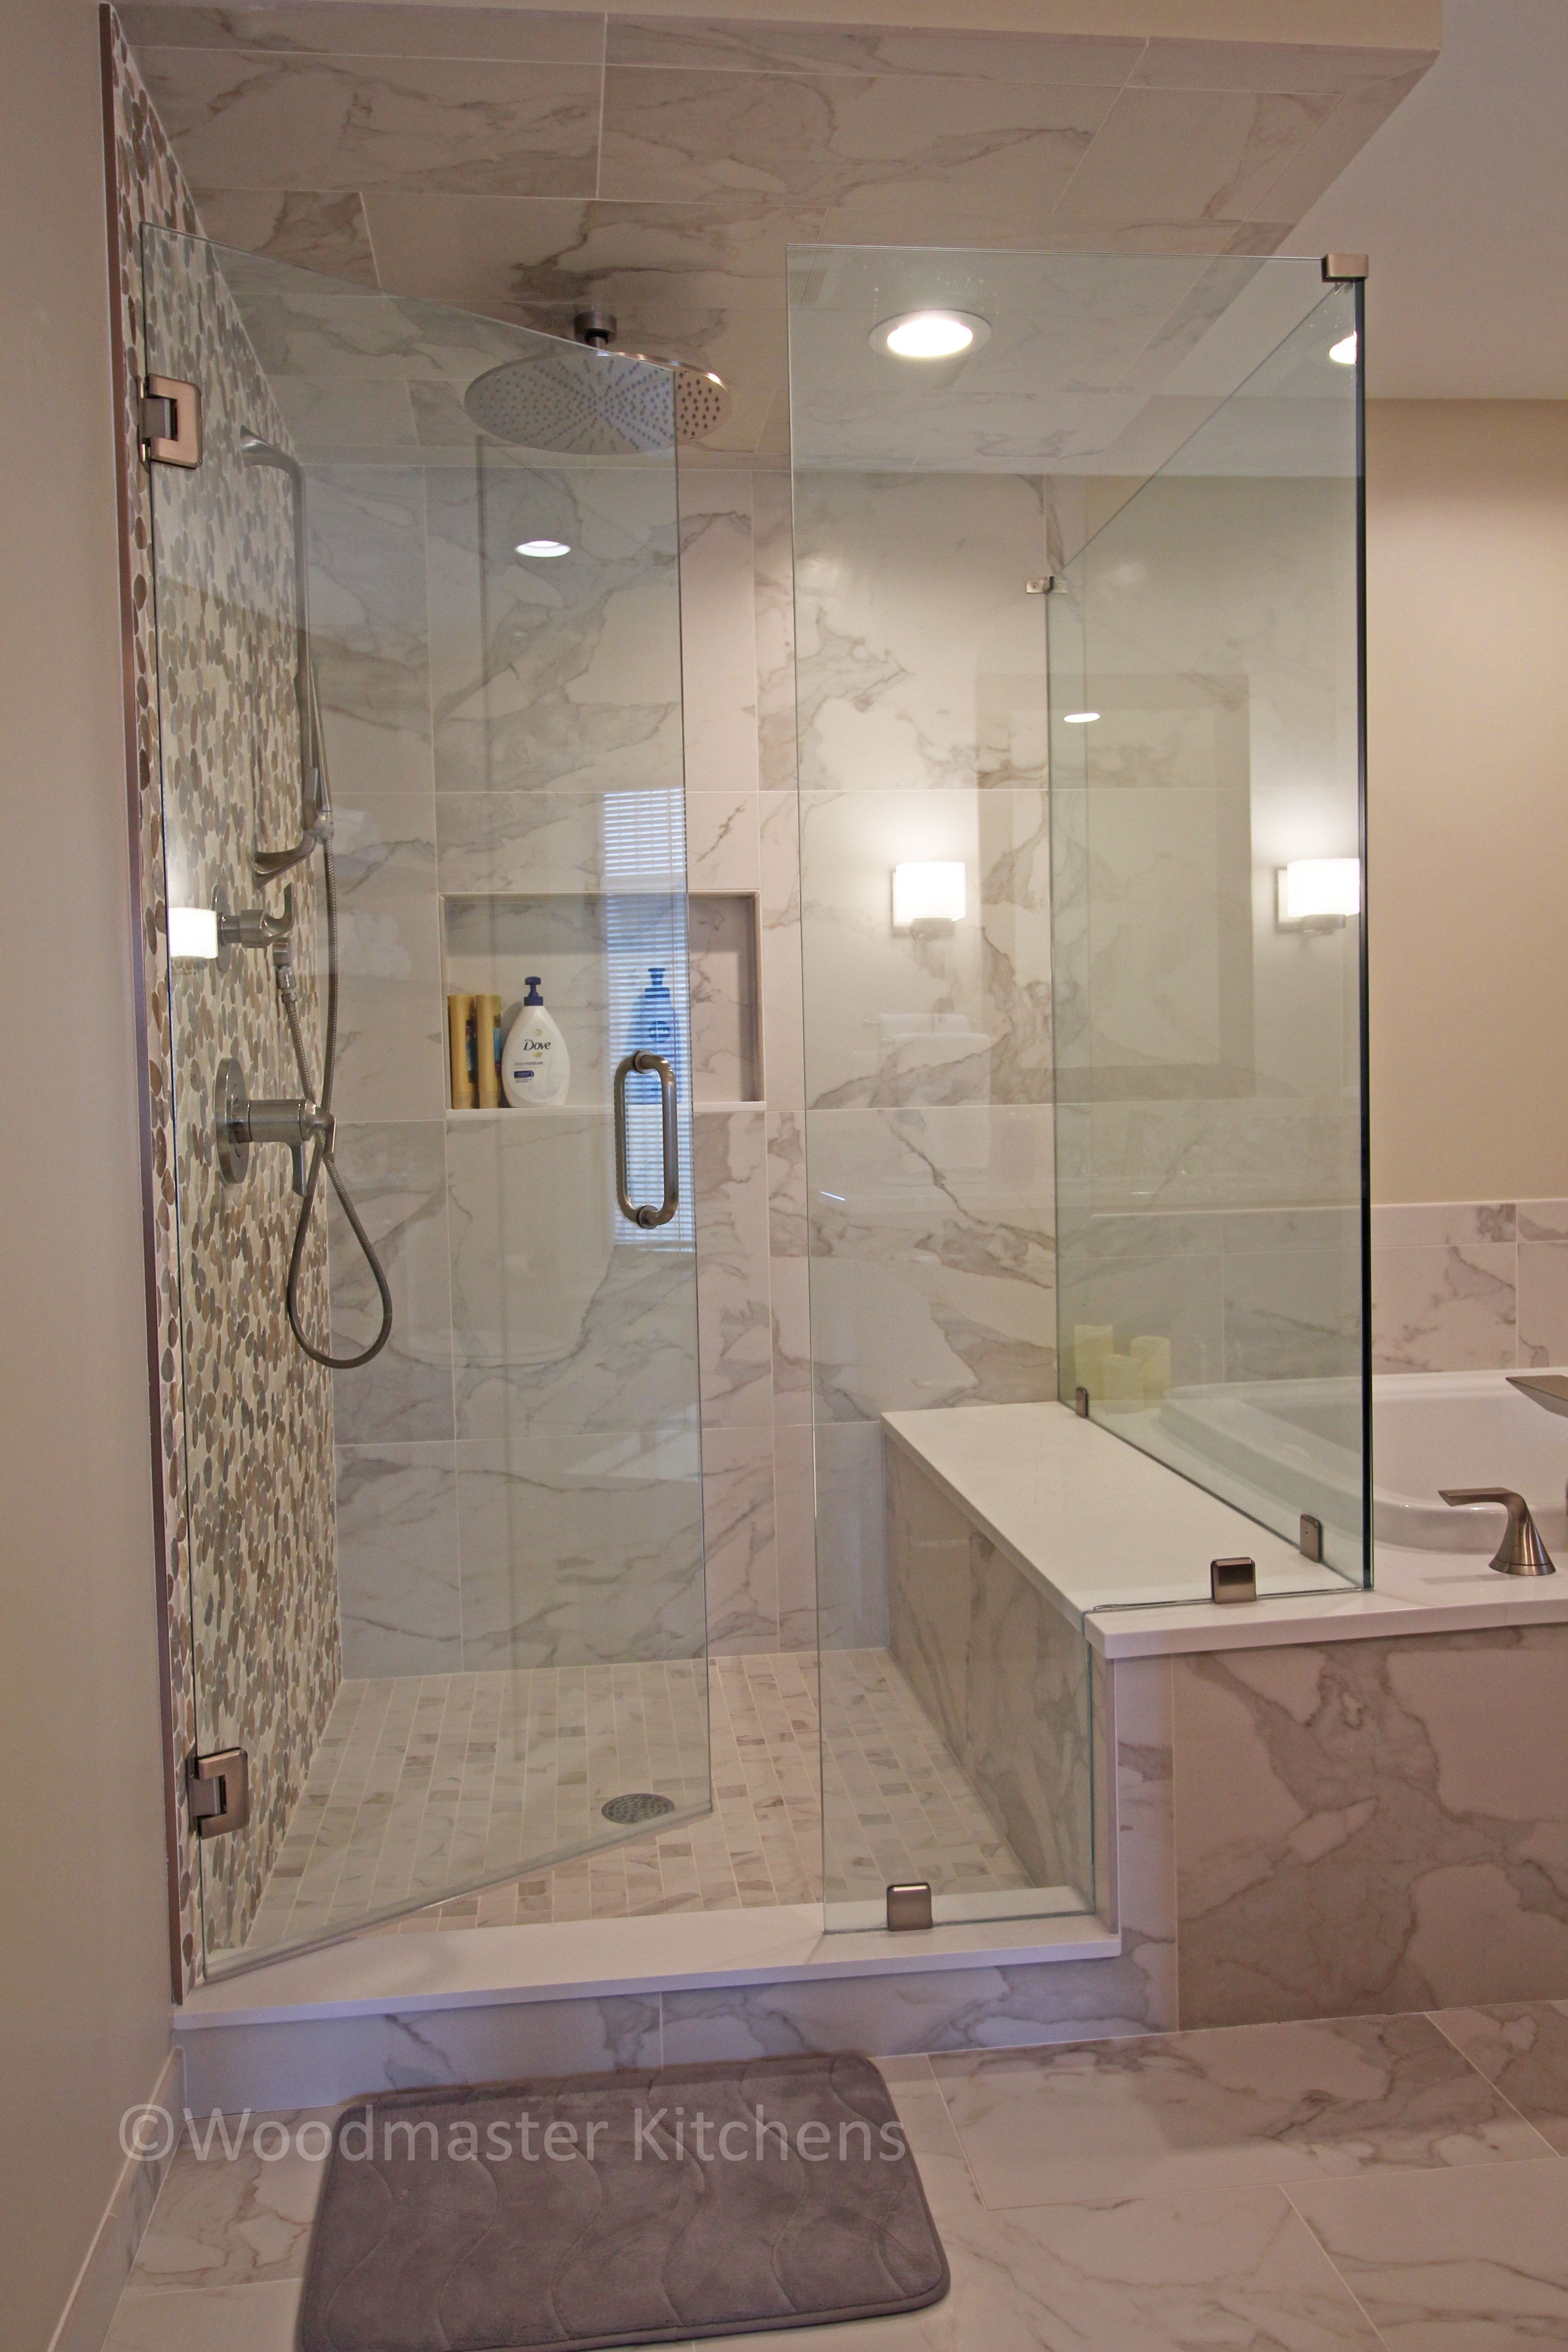 This Transitional Bathroom Design Incorporates Contemporary Elements With Natural Features Such Shower Tile Bathroom Design Small Transitional Bathroom Design